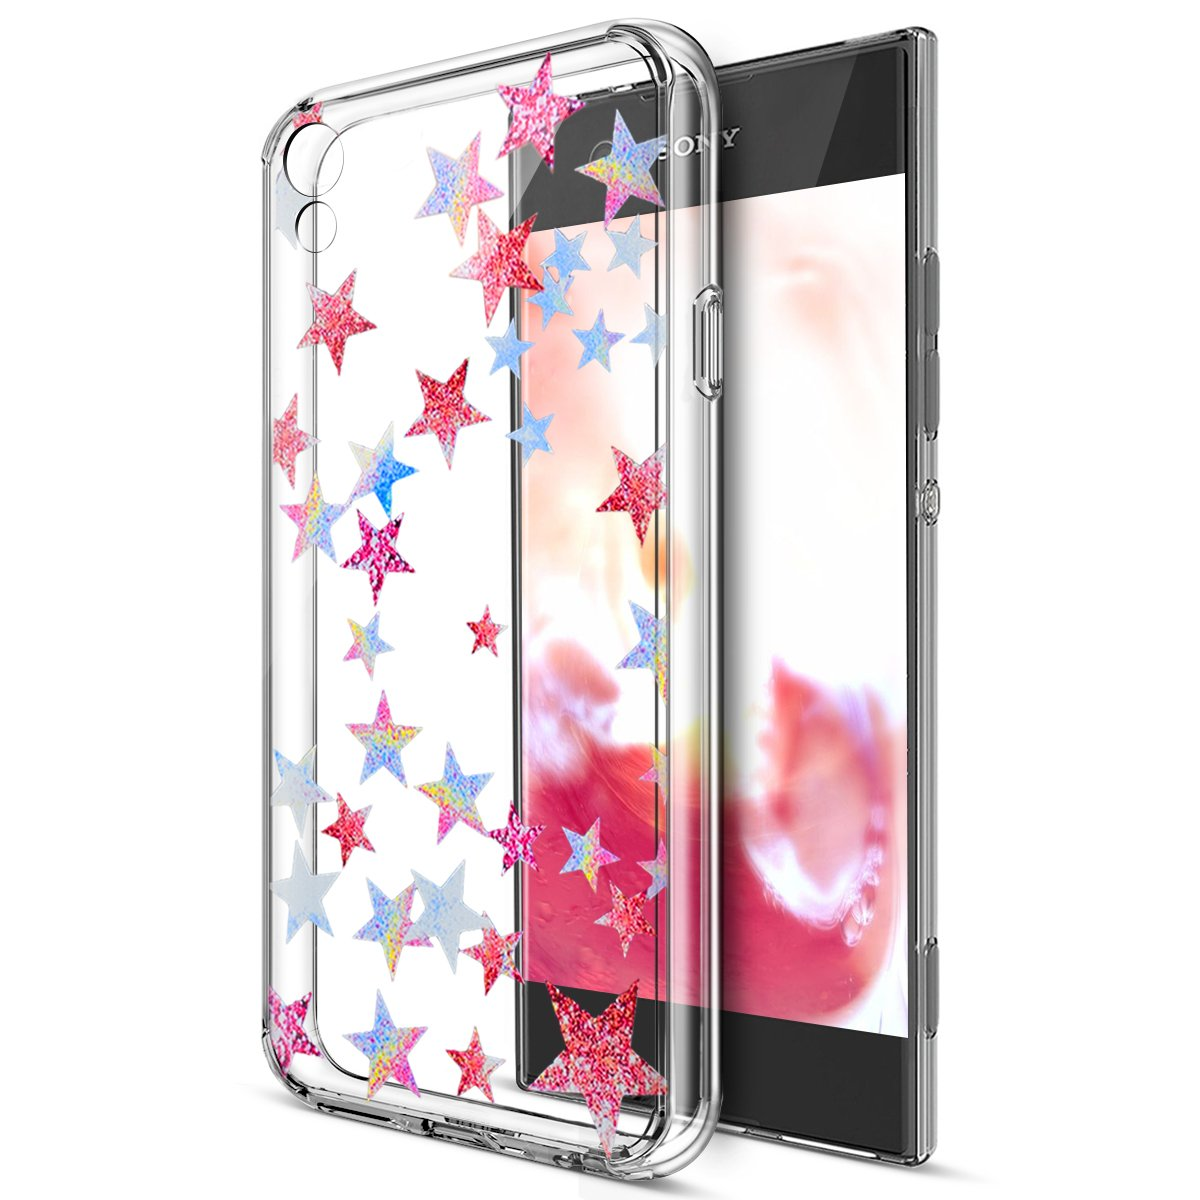 Sony Xperia Xa1 Ultra Casesony Cover Peonia Electroplating Transparent Ultrathin Case Samsung J7 Pro 2017 Coverikasus Art Painted Flowers Crystal Clear Slim Flexible Soft Rubber Gel Tpu Protective